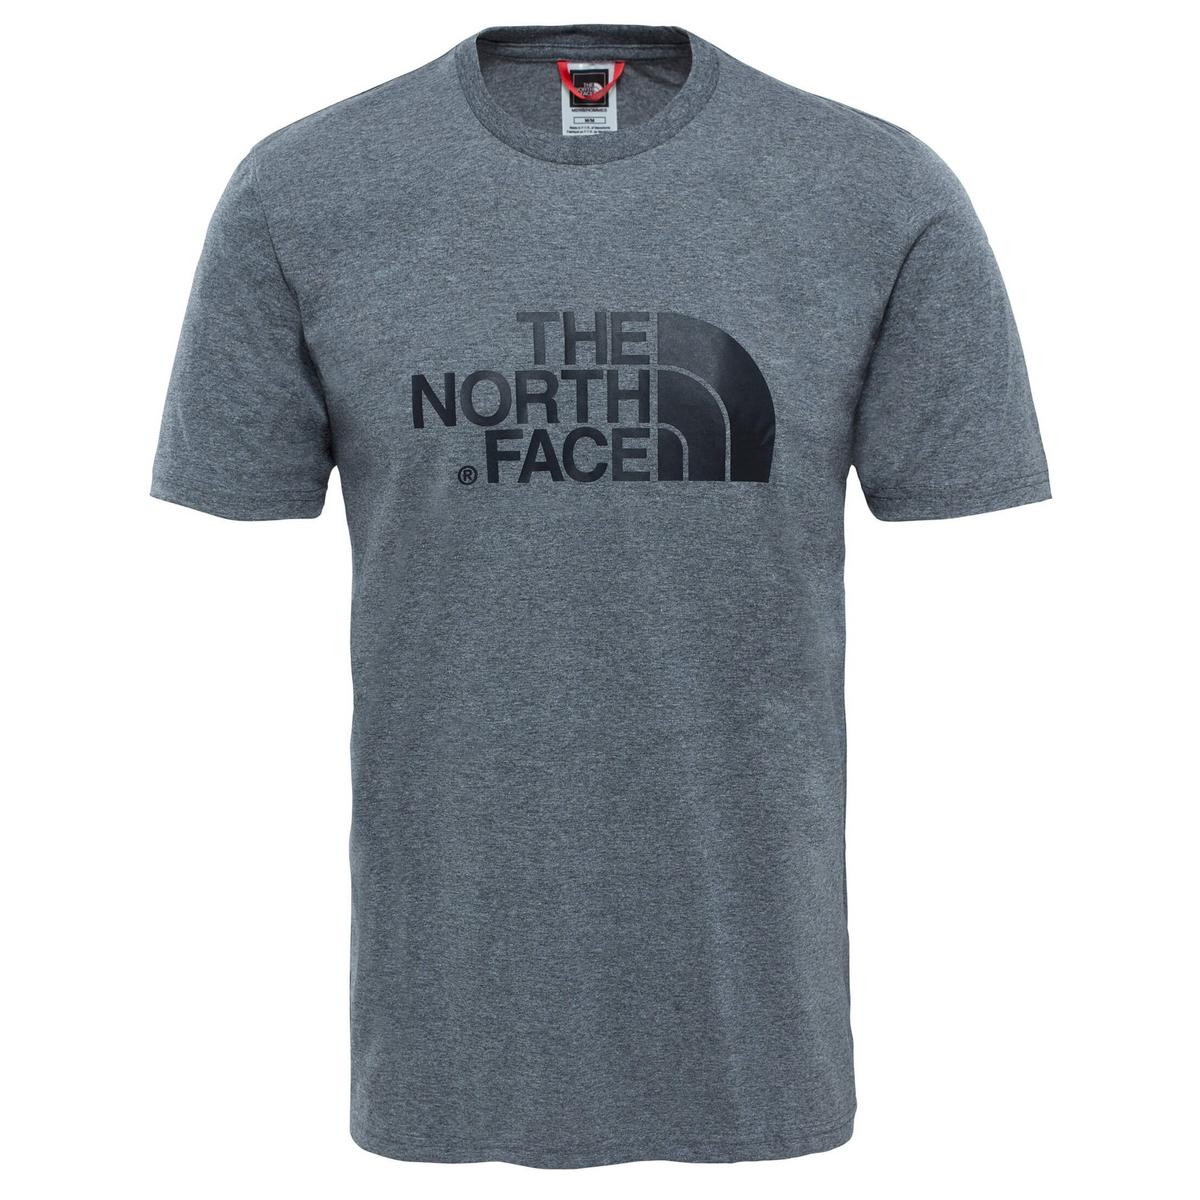 The North Face Men's Short Sleeved Easy T-Shirt